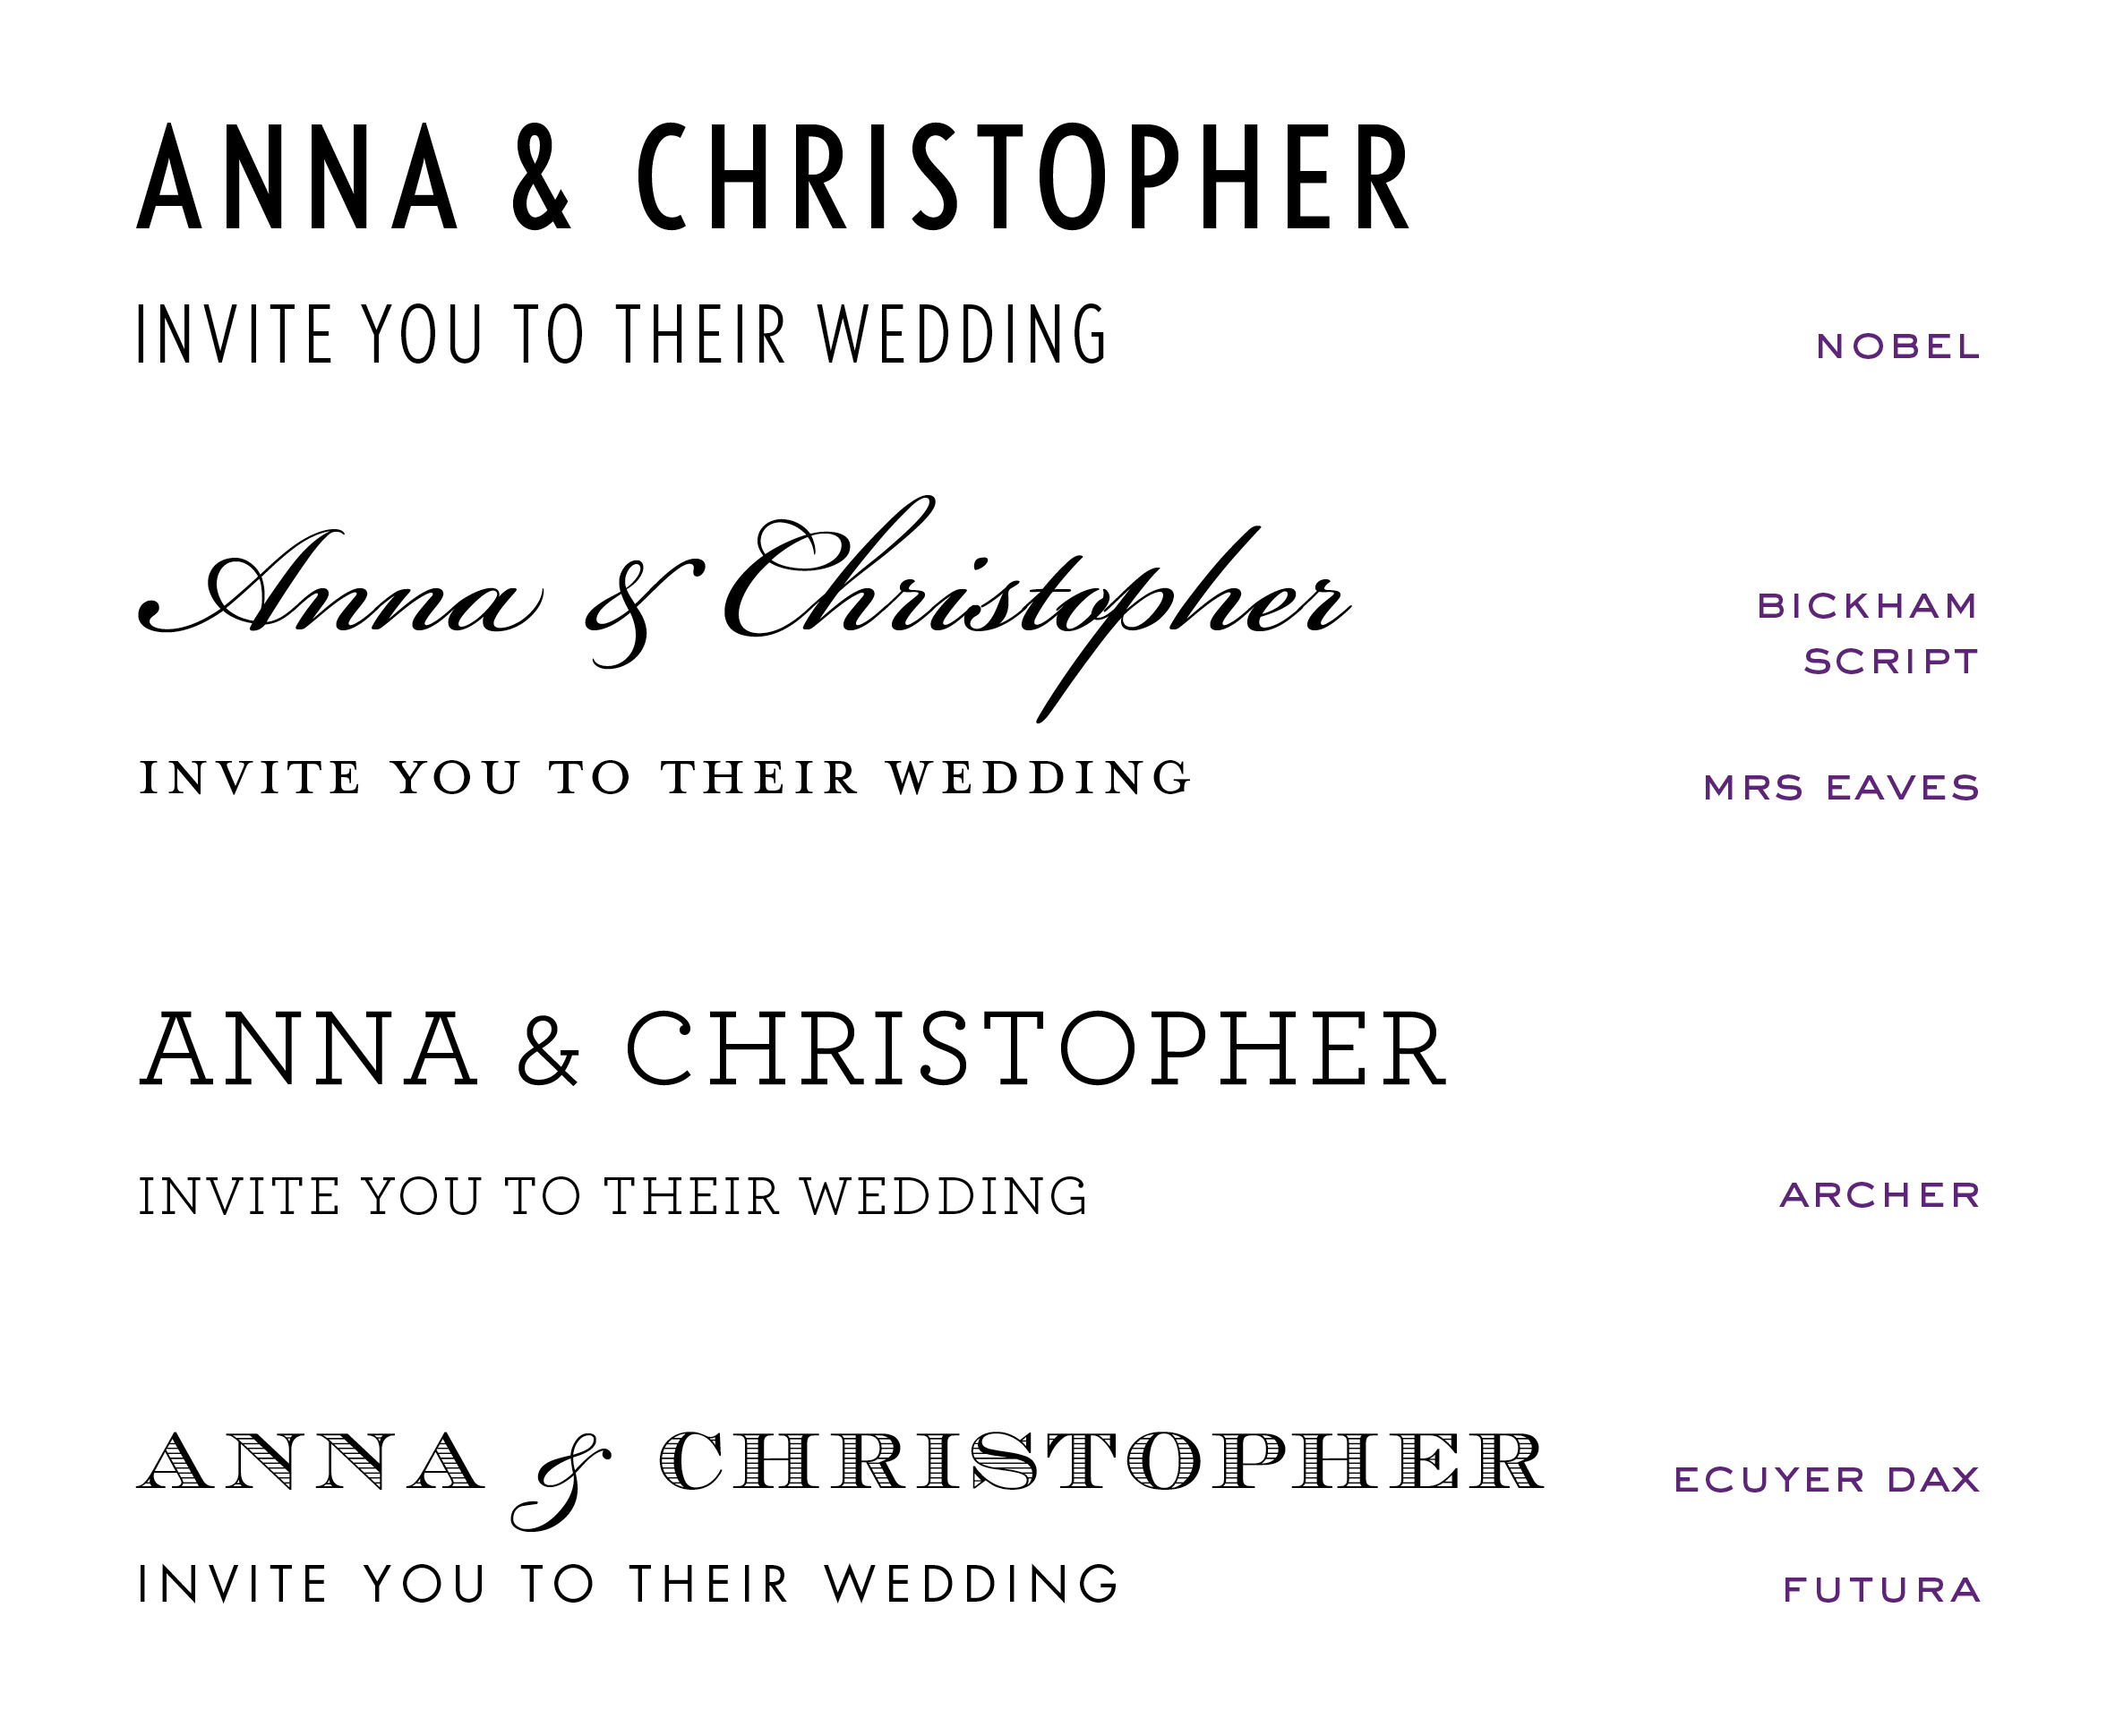 Wedding Invites - nobel font